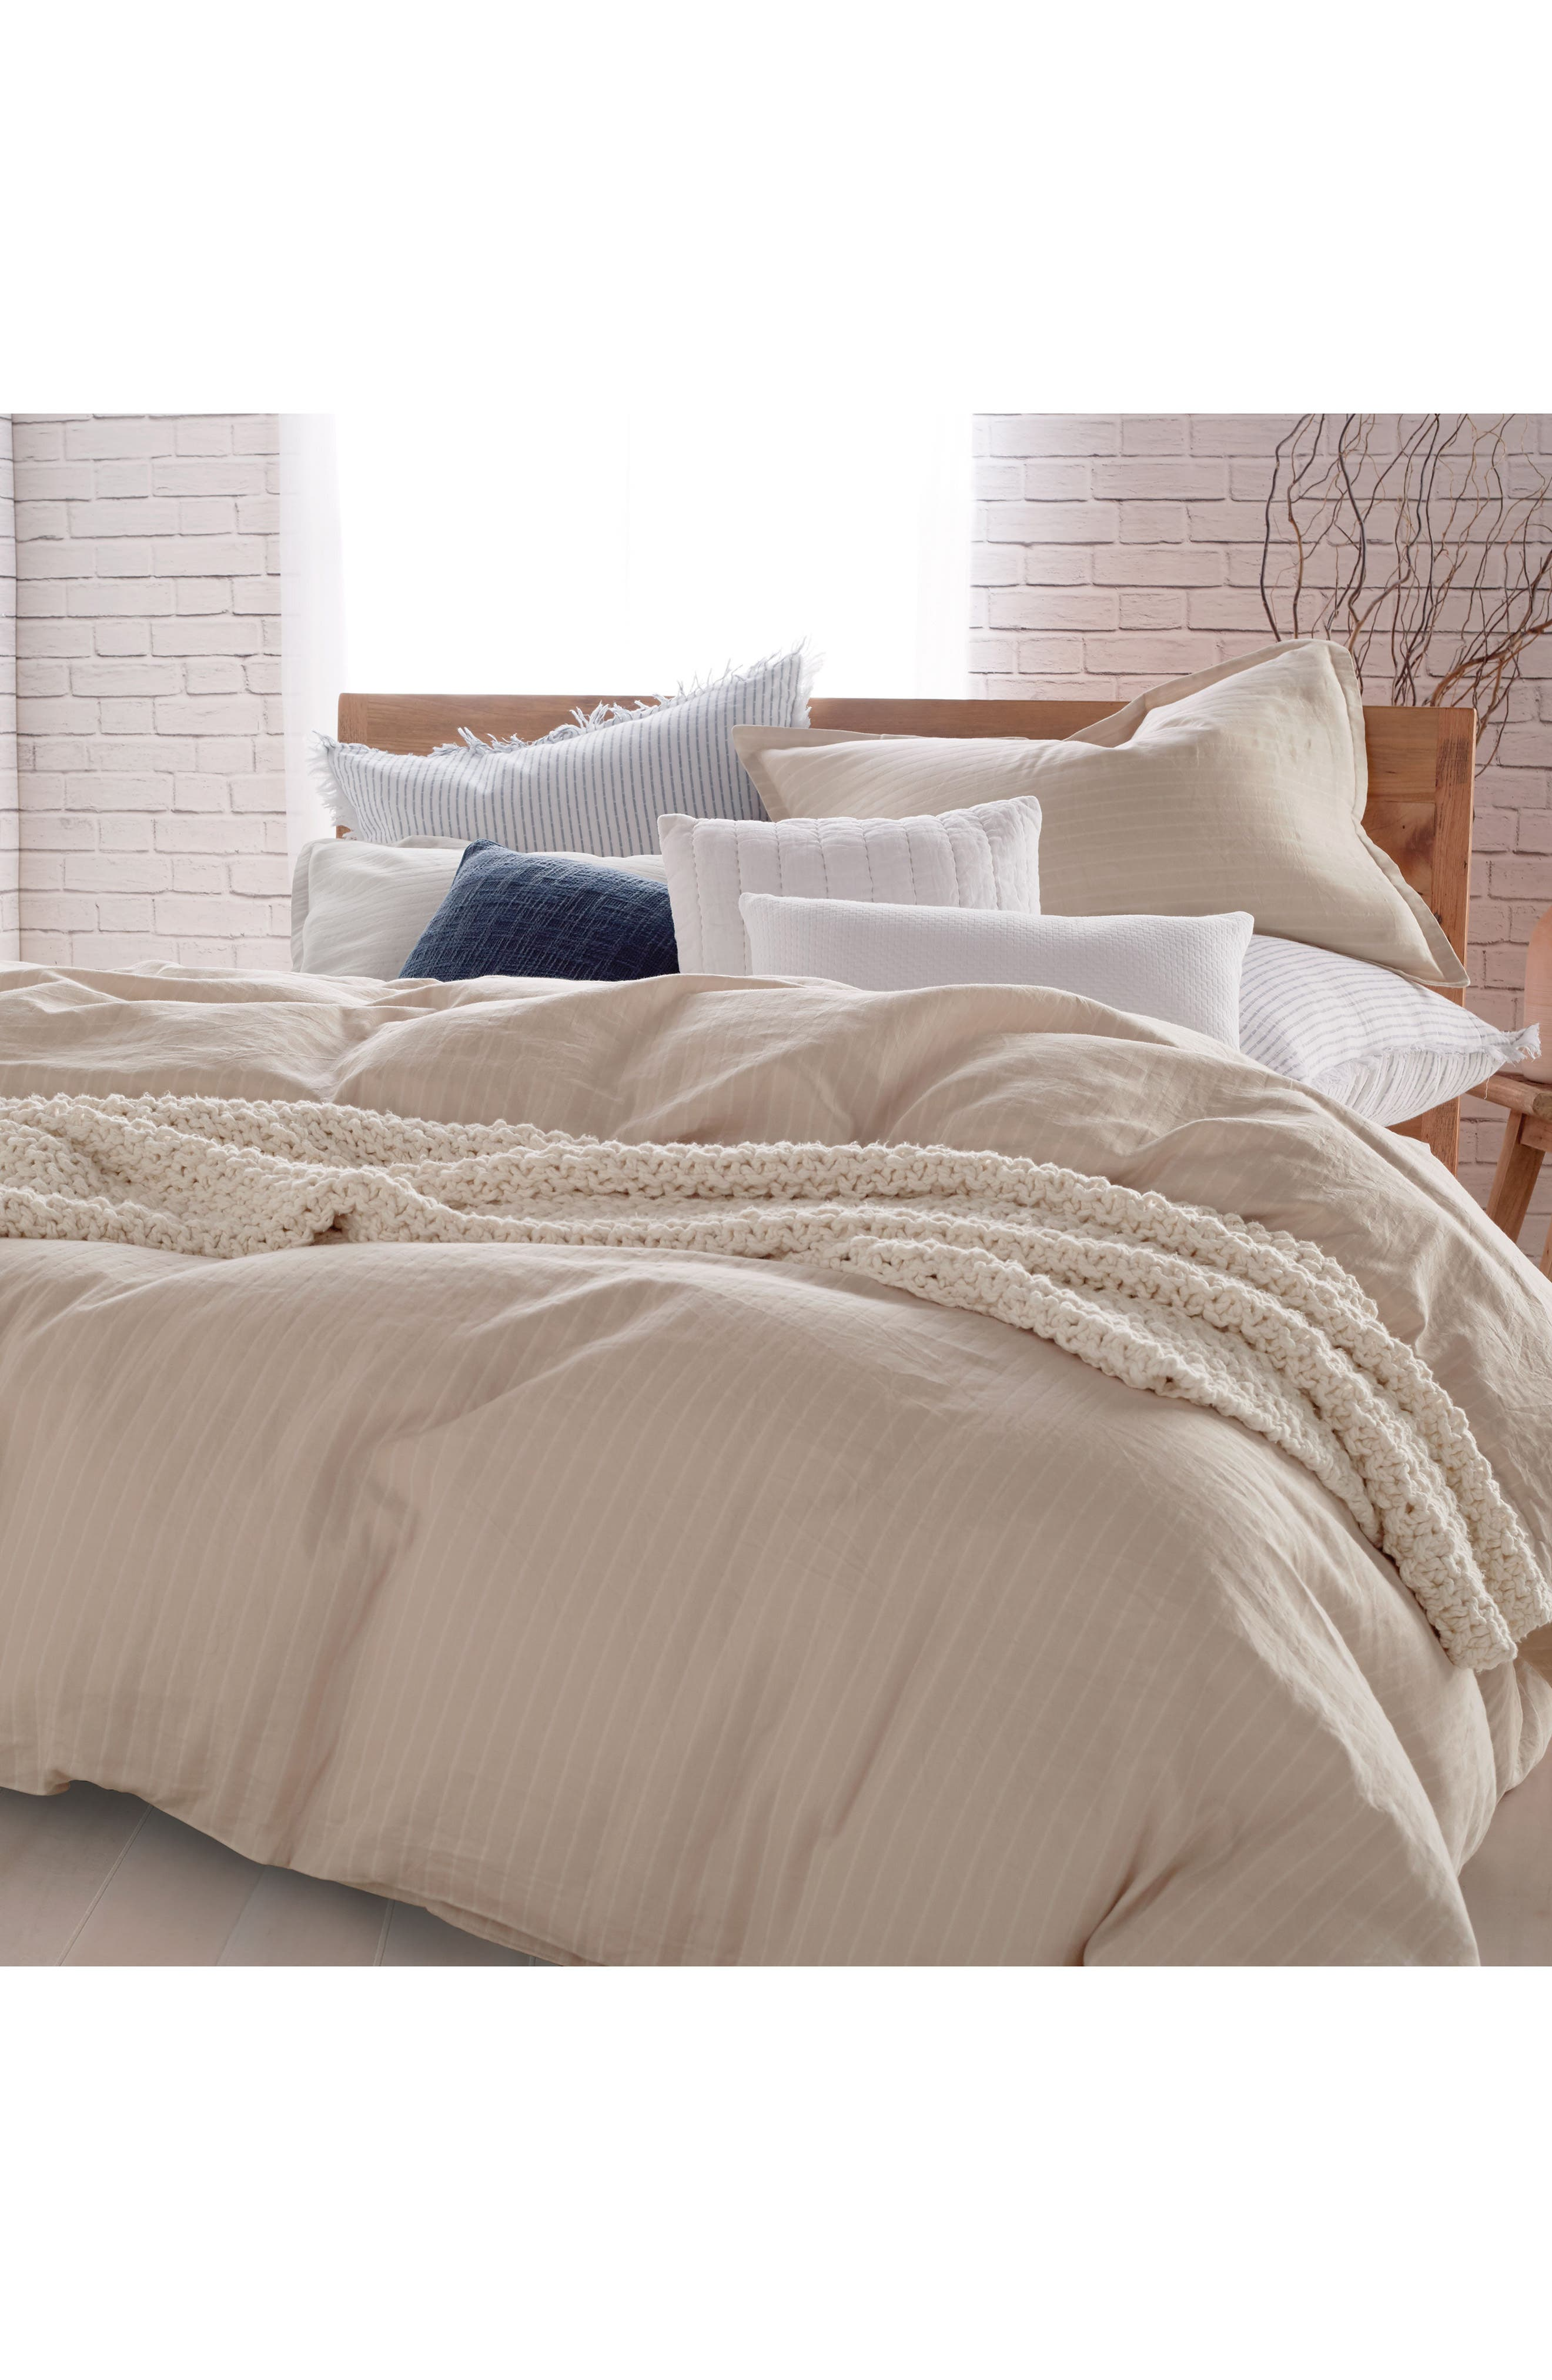 Alternate Image 1 Selected - DKNY PURE Comfy Duvet Cover